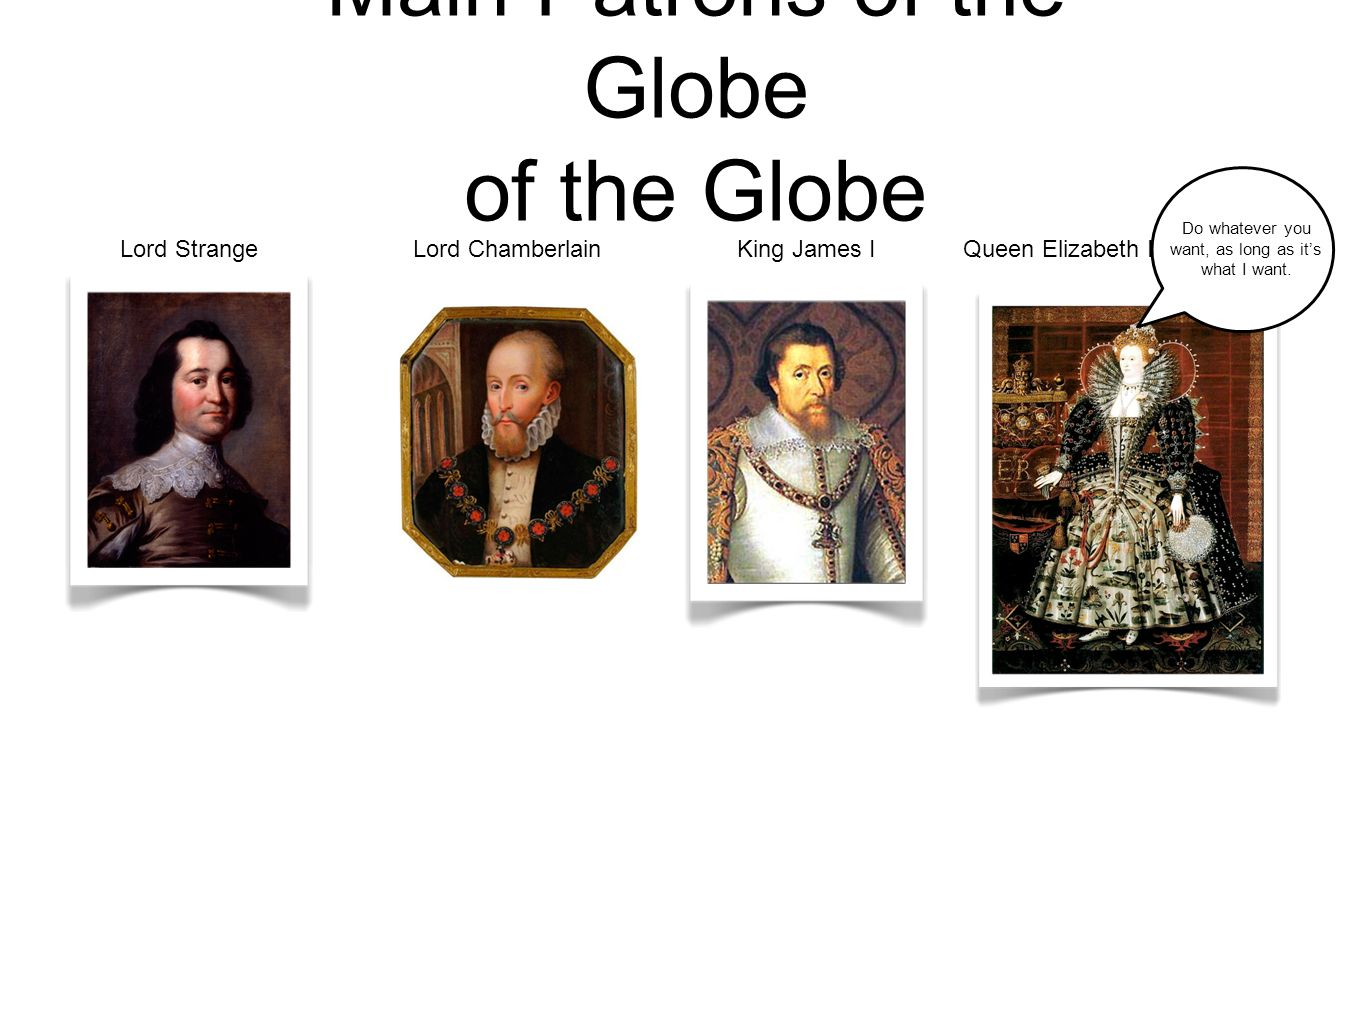 Main Patrons of the Globe of the Globe